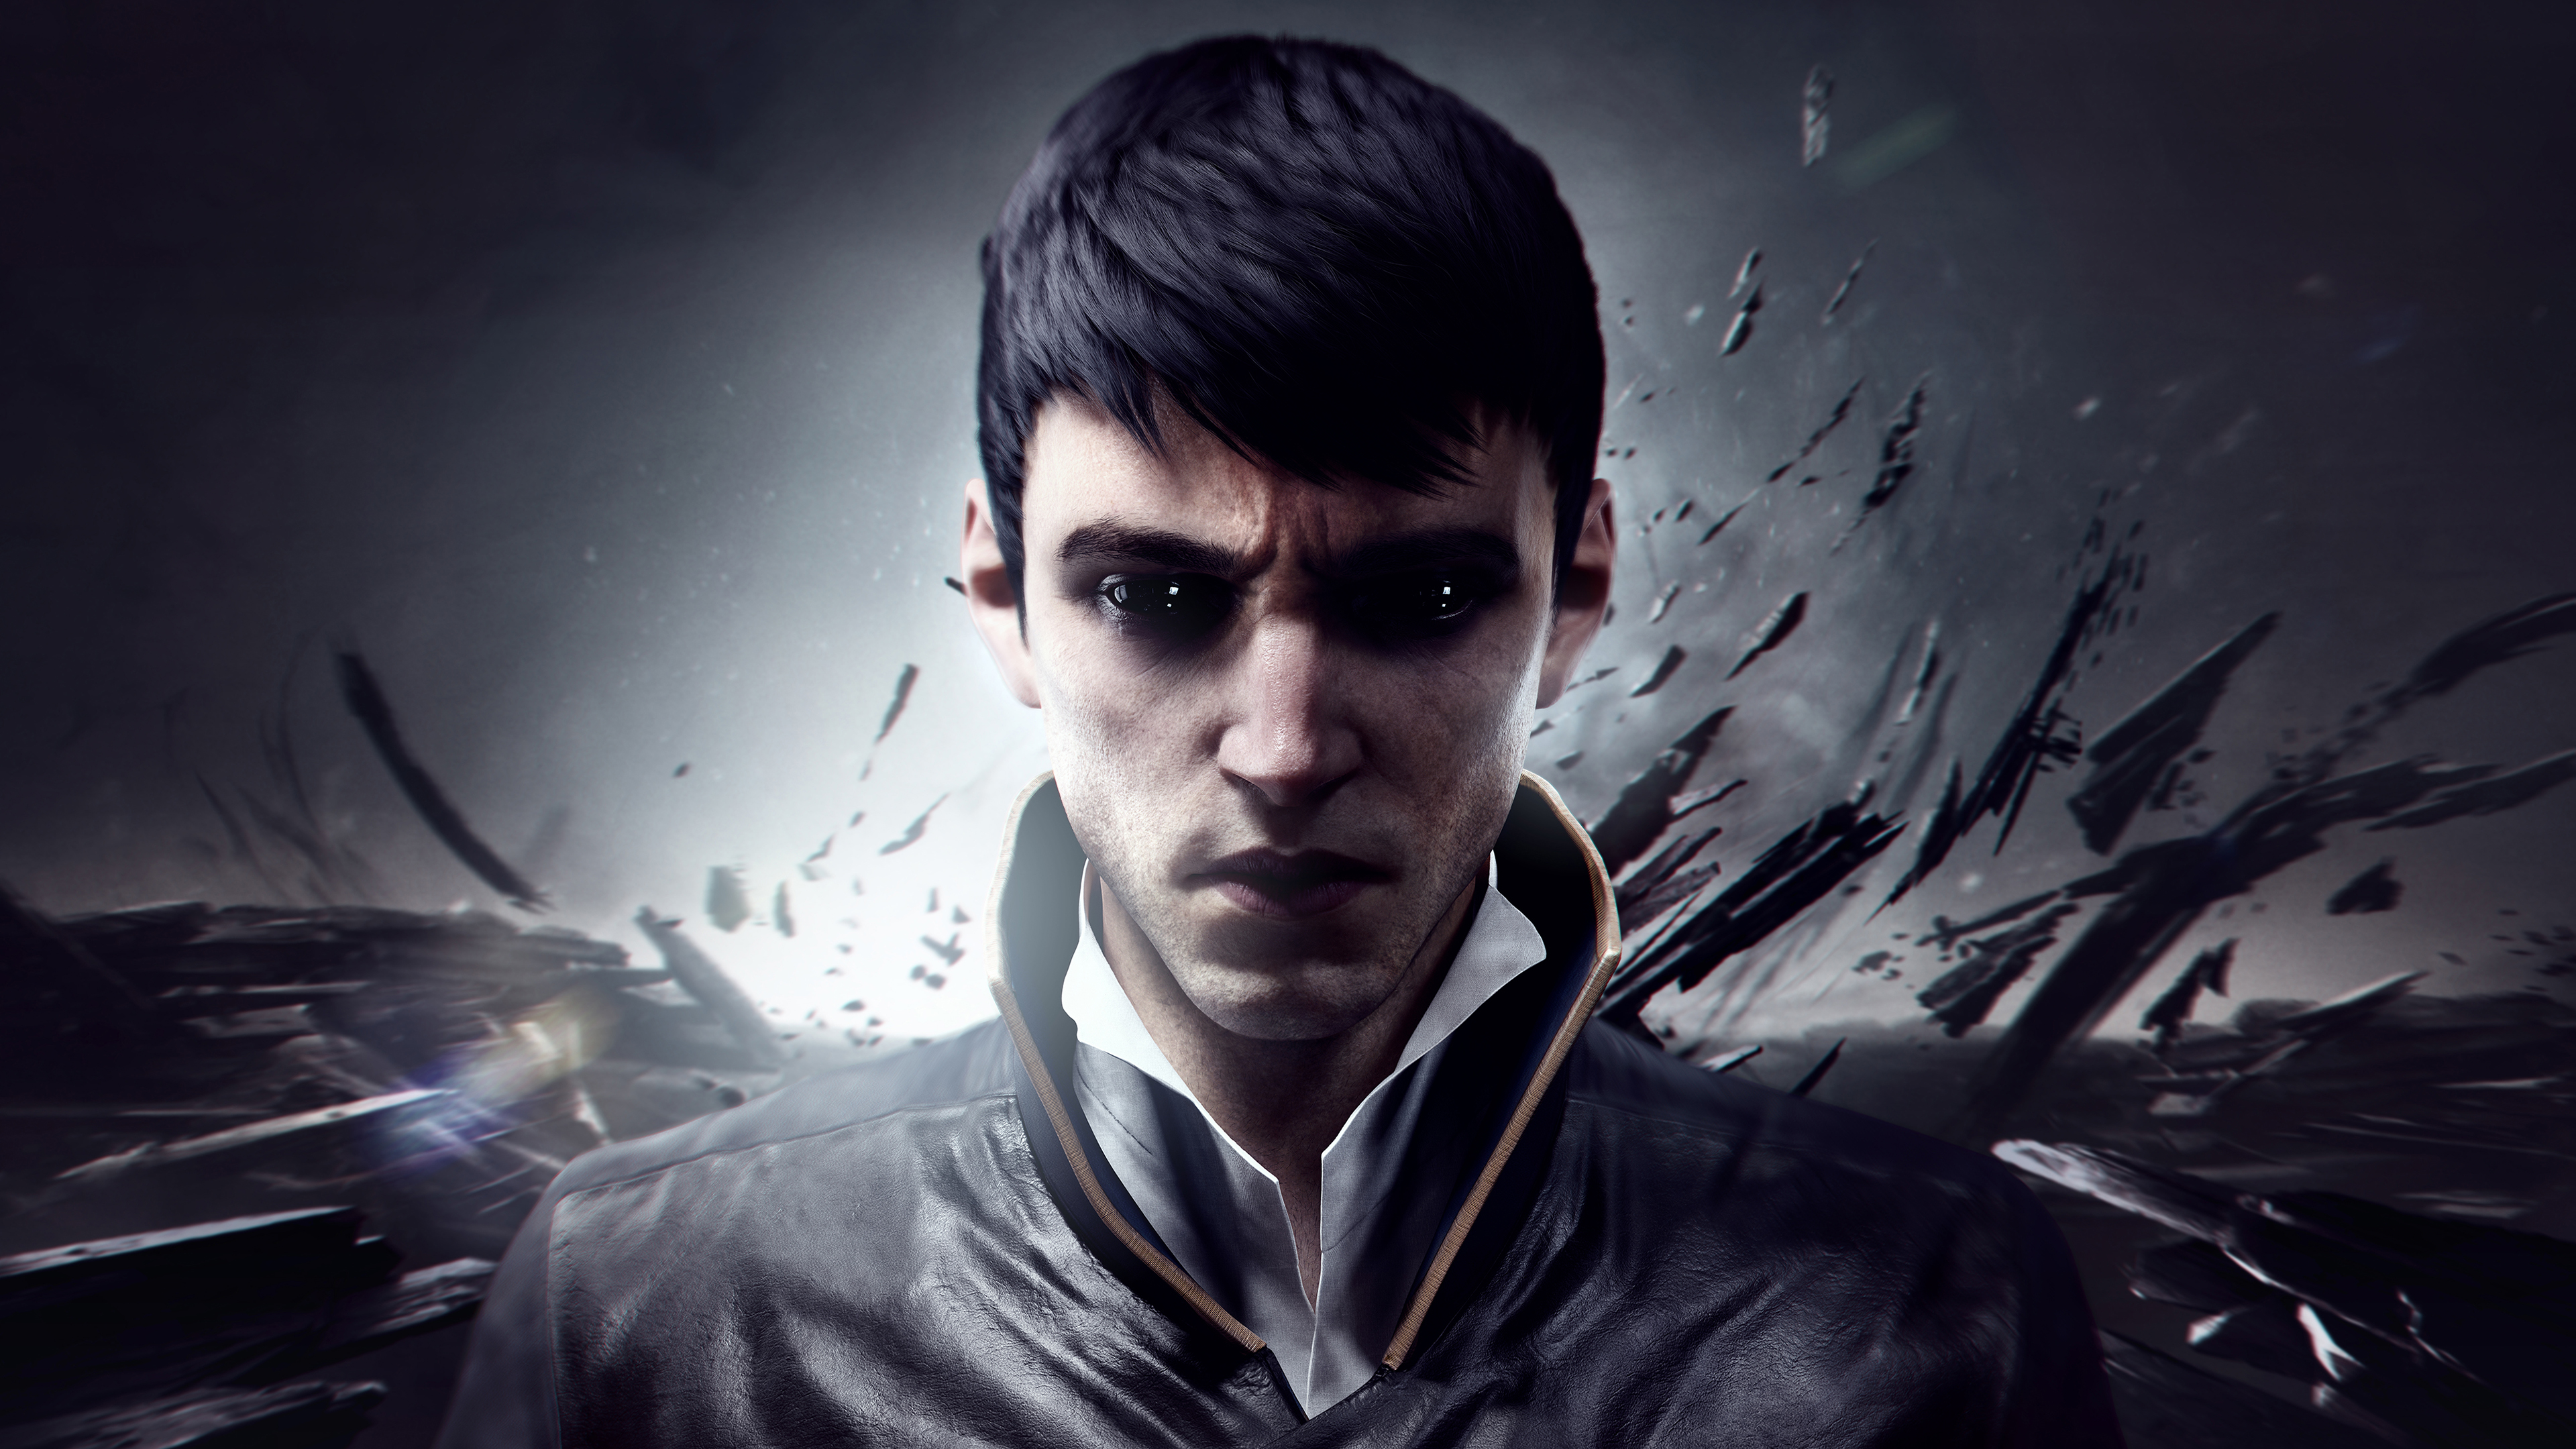 Dishonored Wallpaper 4k: The Outsider Dishonored 2 4k, HD Games, 4k Wallpapers